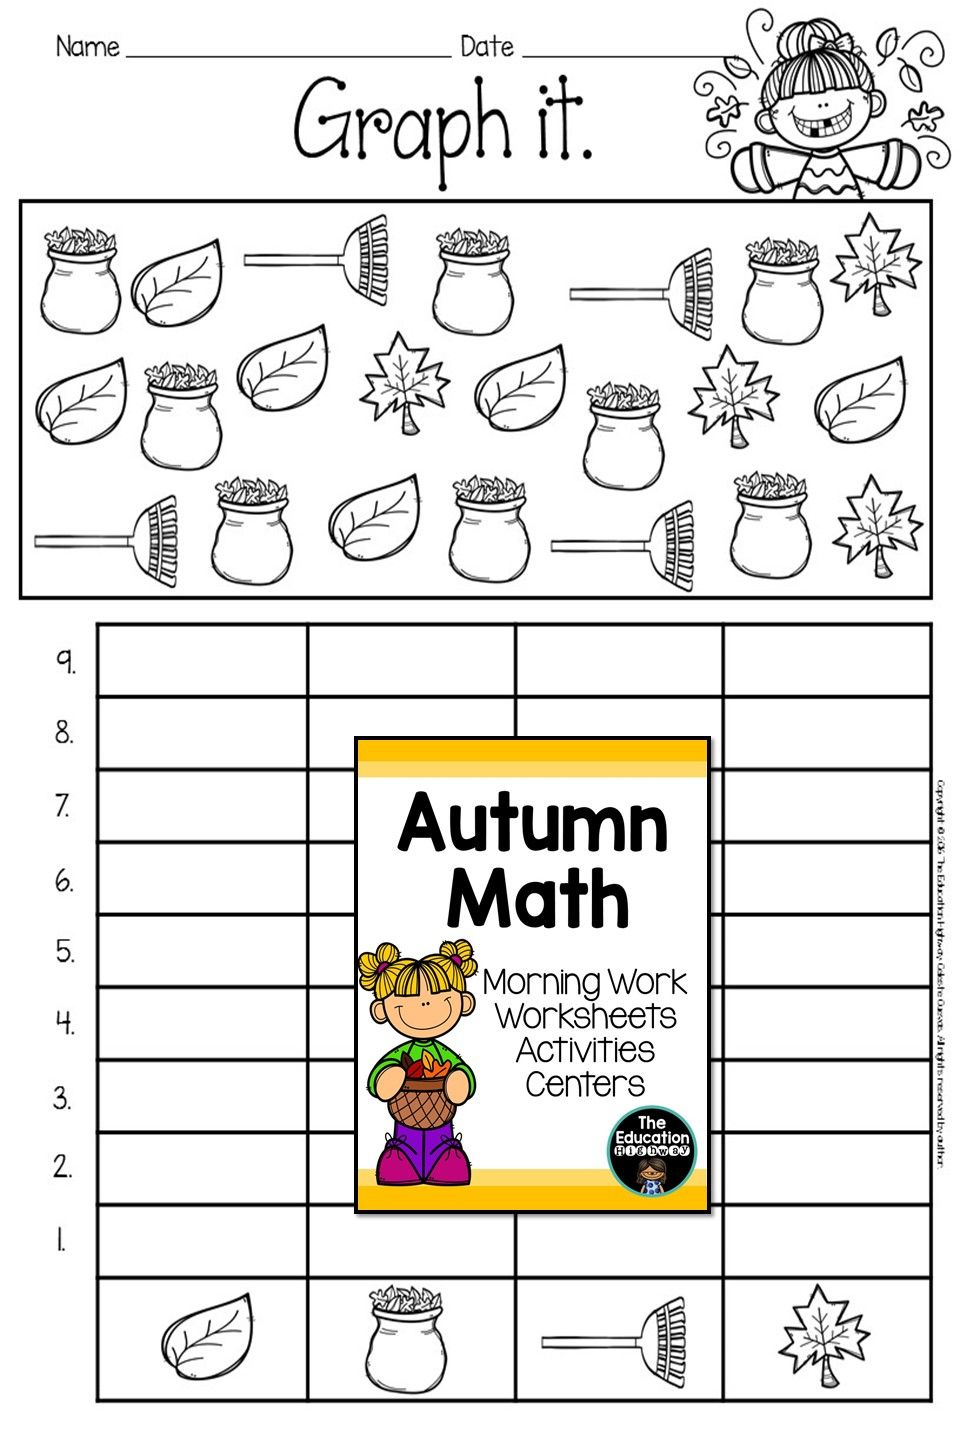 Autumn Math Worksheets and 13 Centers – Morning Work Worksheets